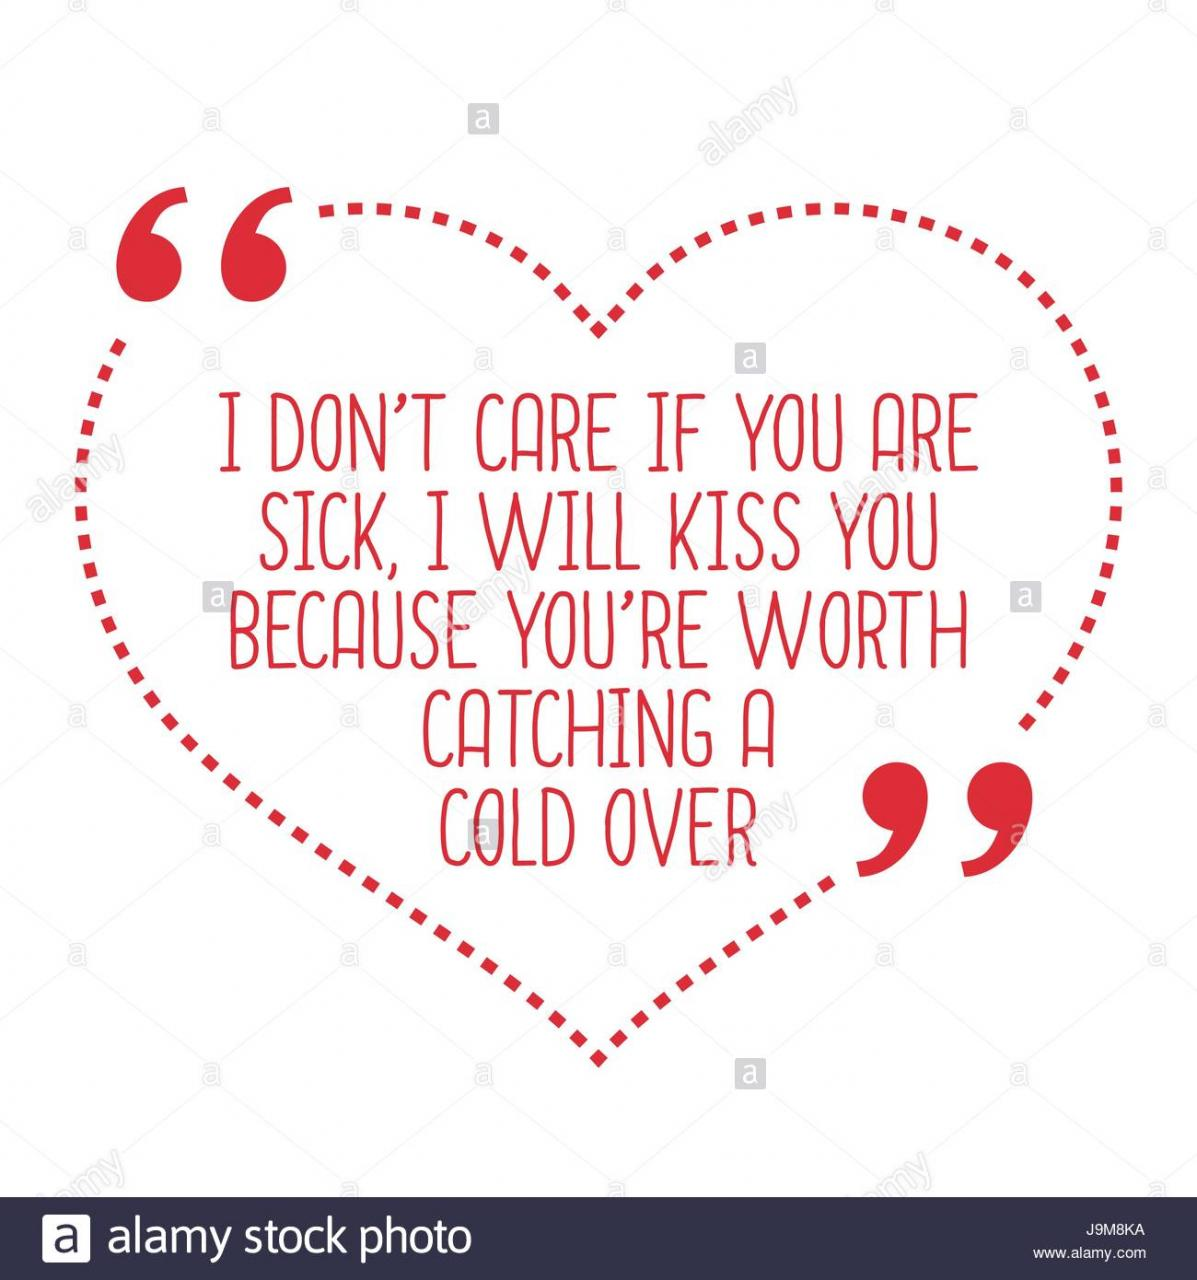 Funny Love Quote I Dont Care If You Are Sick I Will Kiss You Because Youre Worth Catching A Cold Over Simple Trendy Design